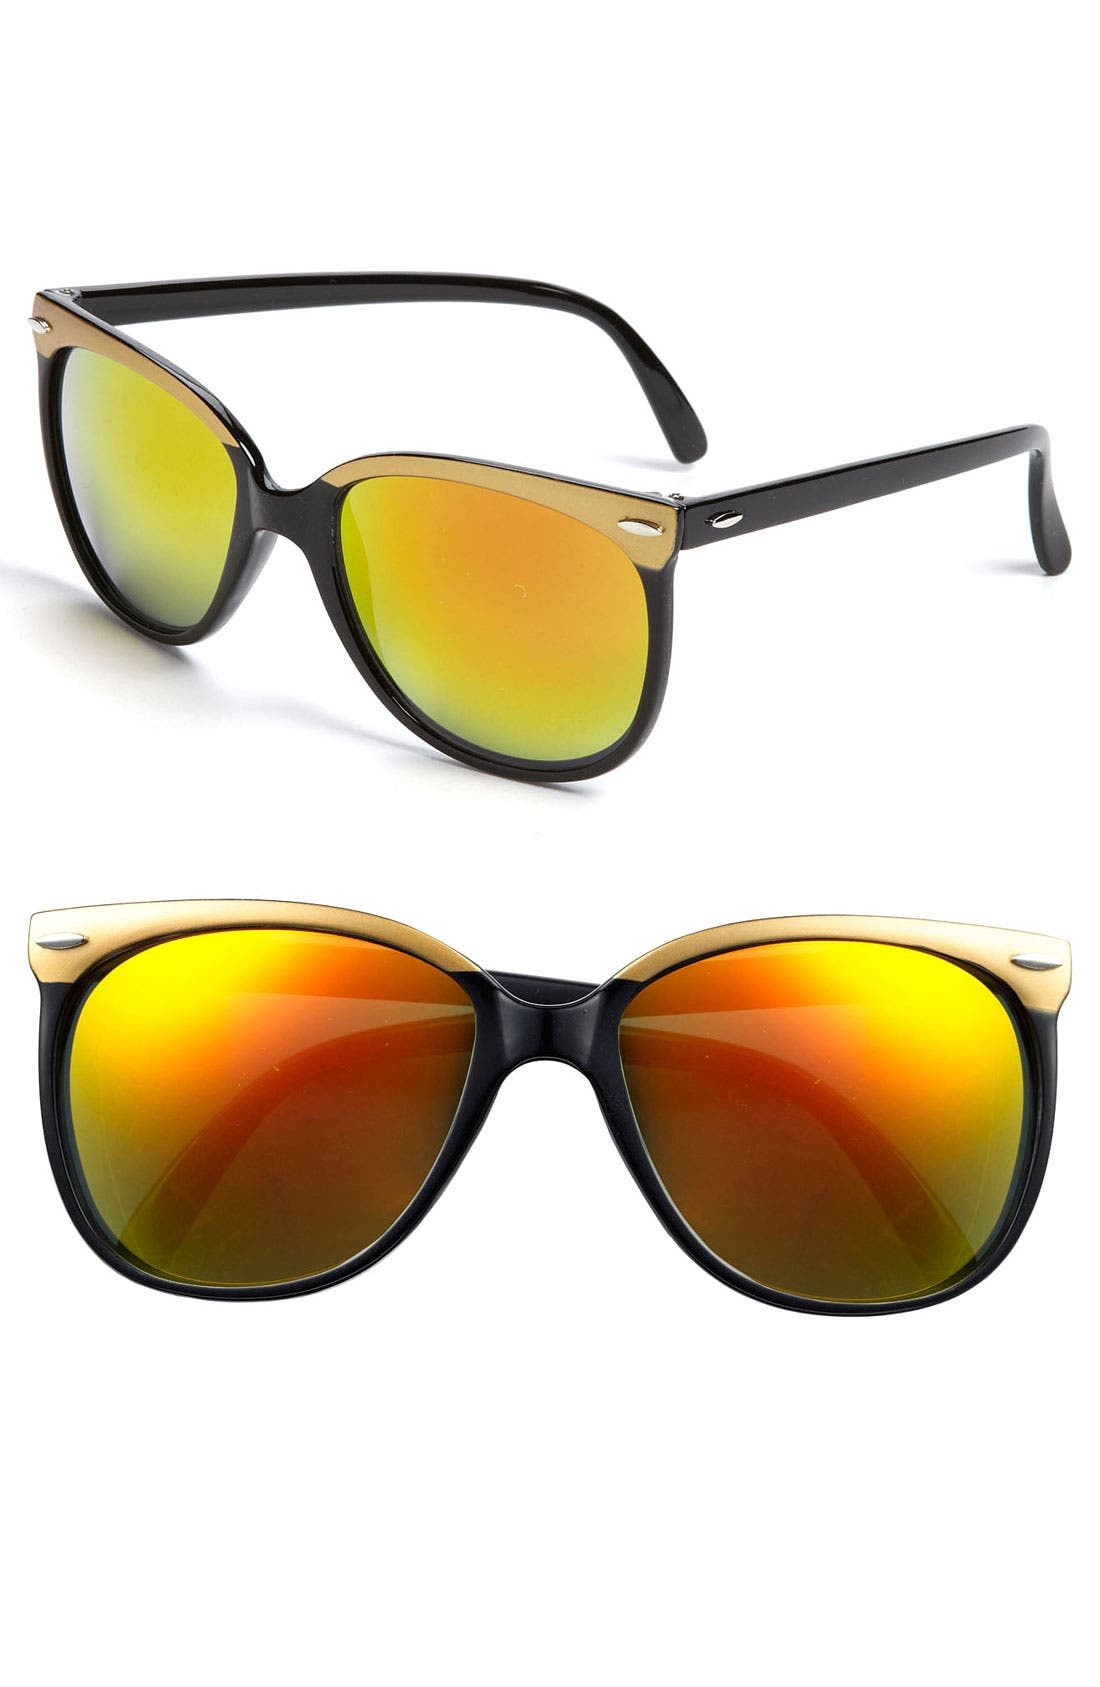 Alternate Image 1 Selected - BP. Mirrored Retro Sunglasses